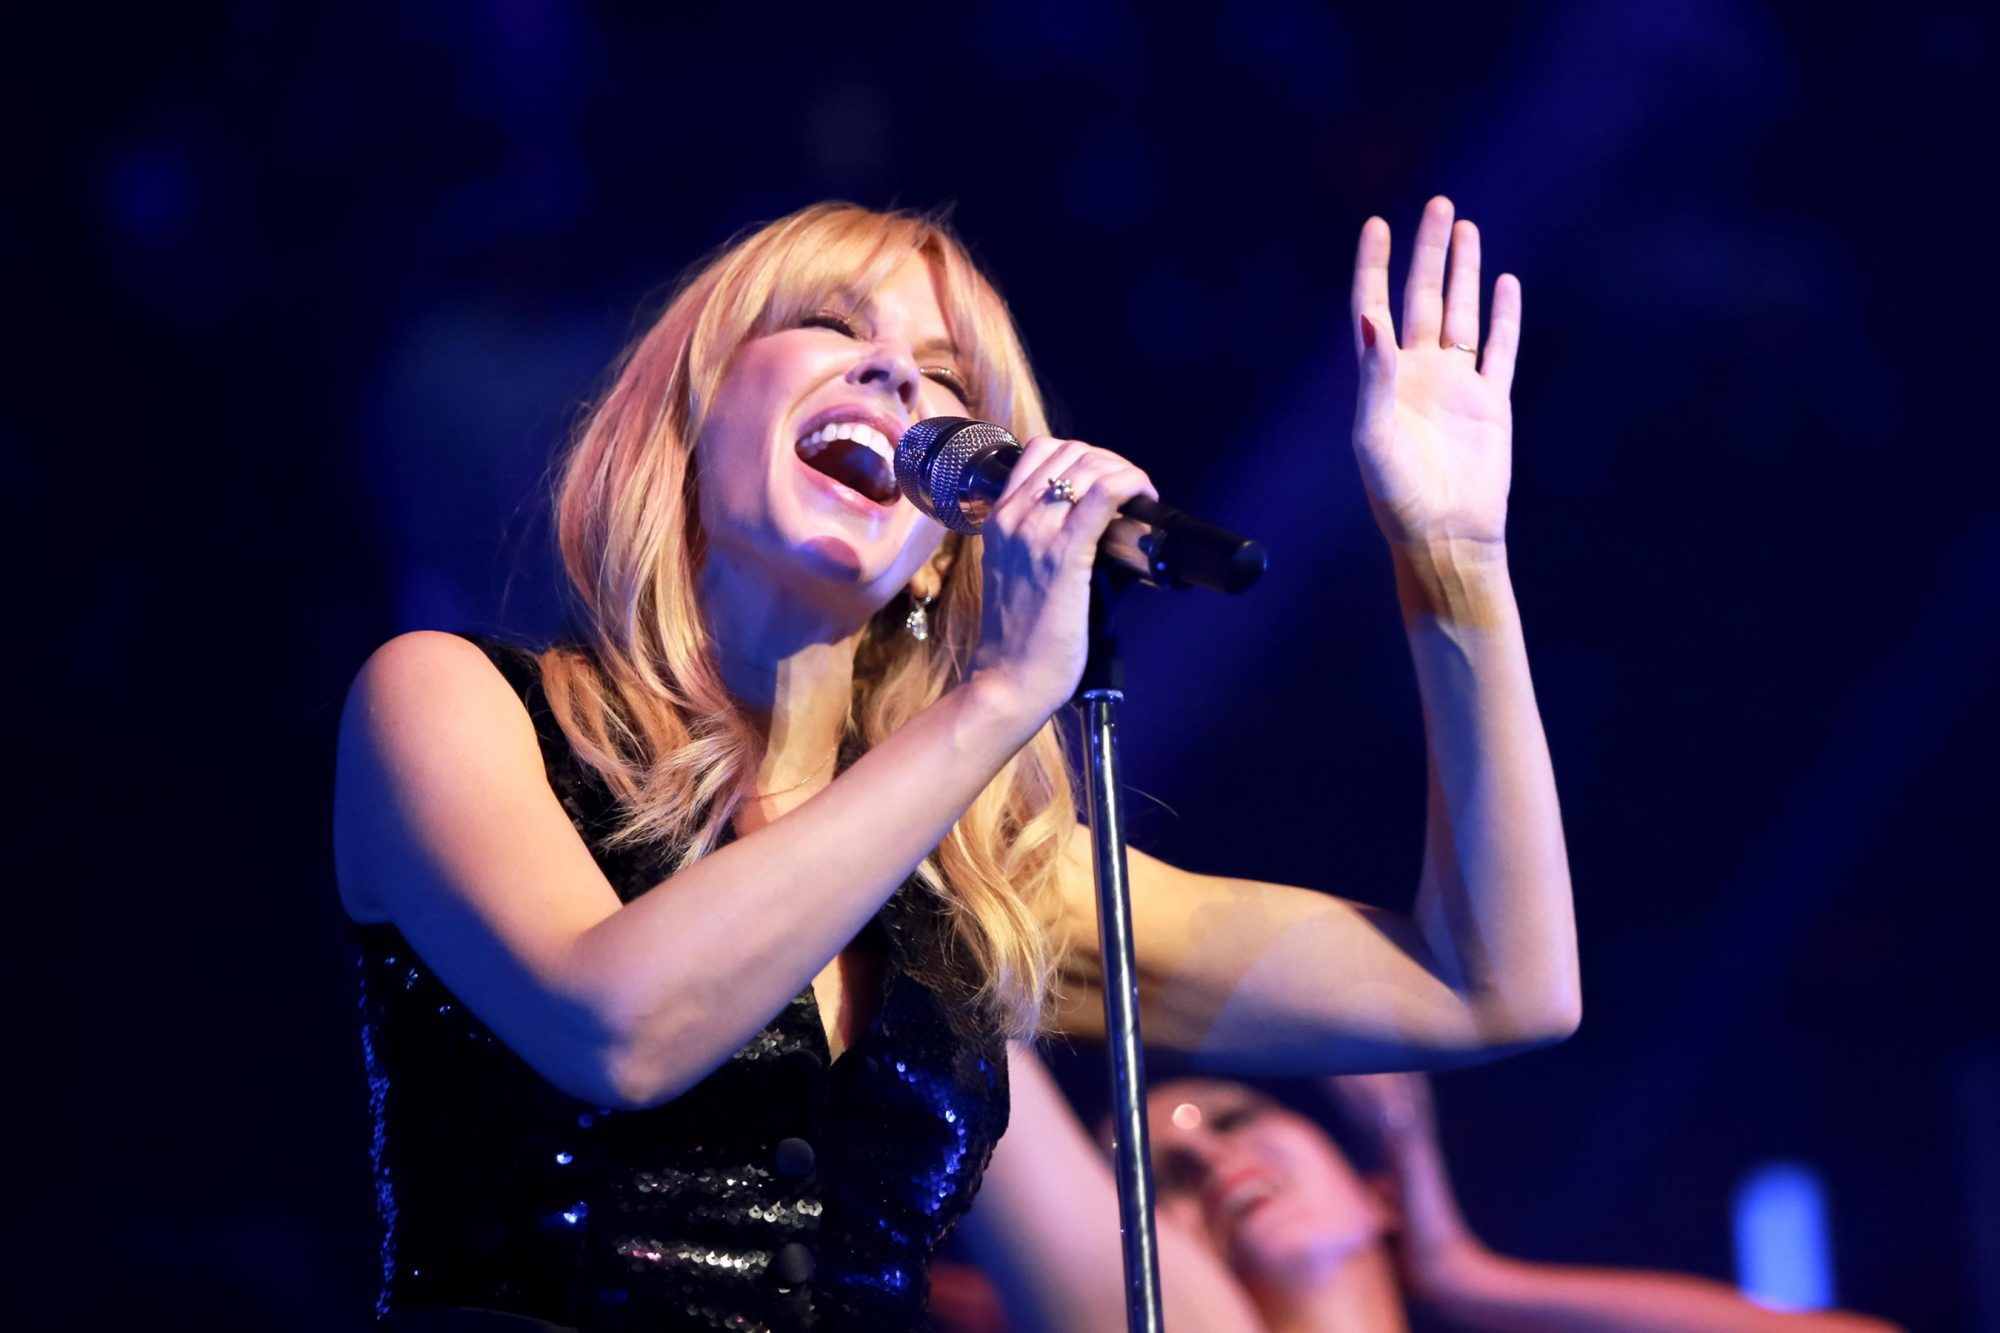 Kylie Minogue Performs At The Royal Albert Hall